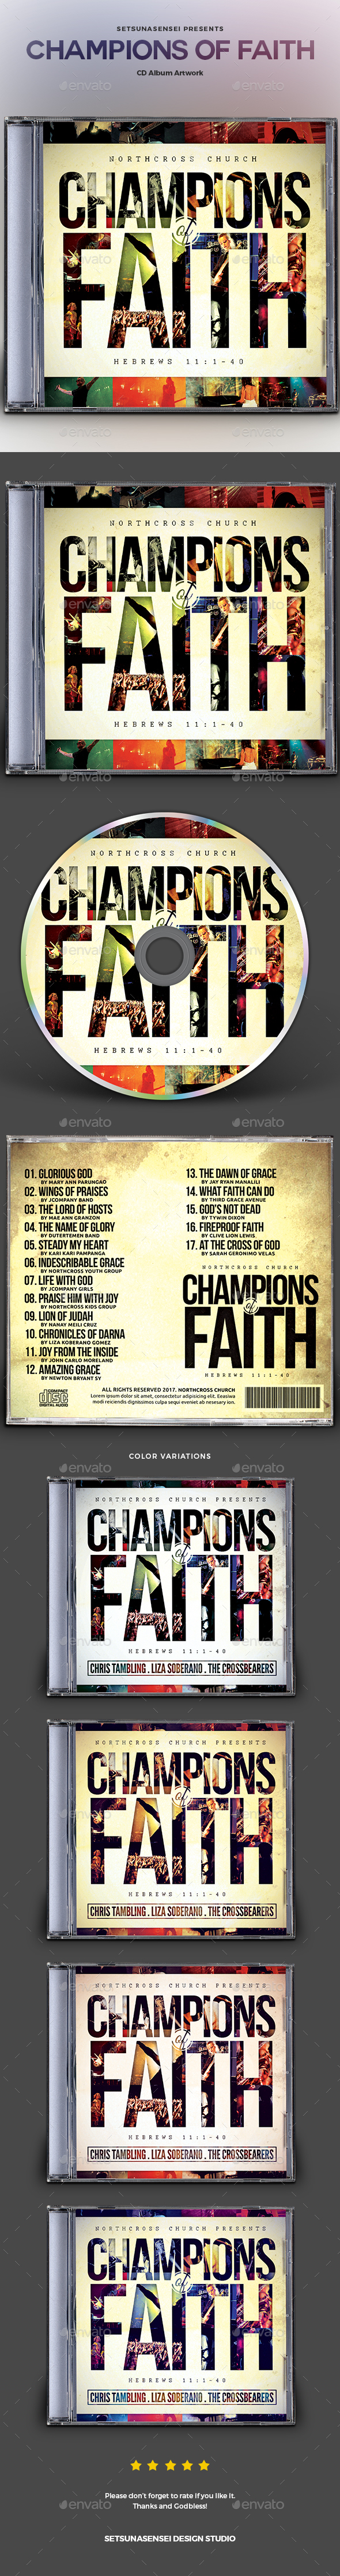 Champions of Faith CD Album Artwork - CD & DVD Artwork Print Templates